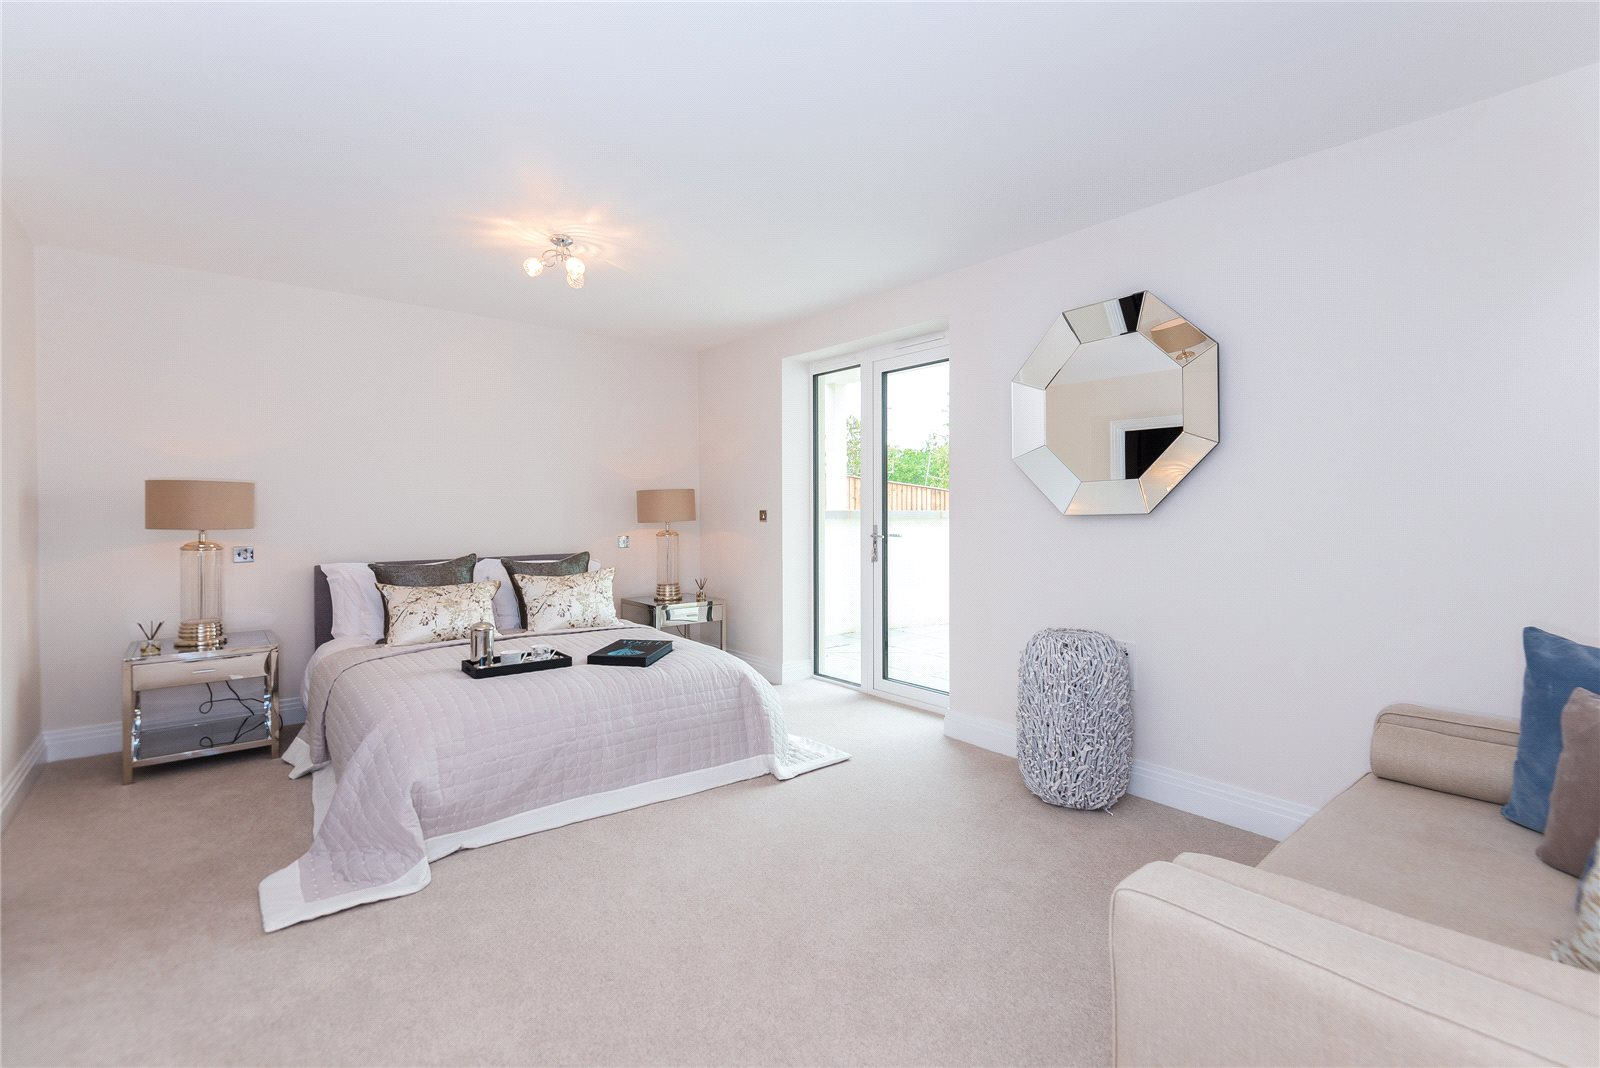 Additional photo for property listing at South Park Crescent, Gerrards Cross, Buckinghamshire, SL9 Gerrards Cross, Αγγλια